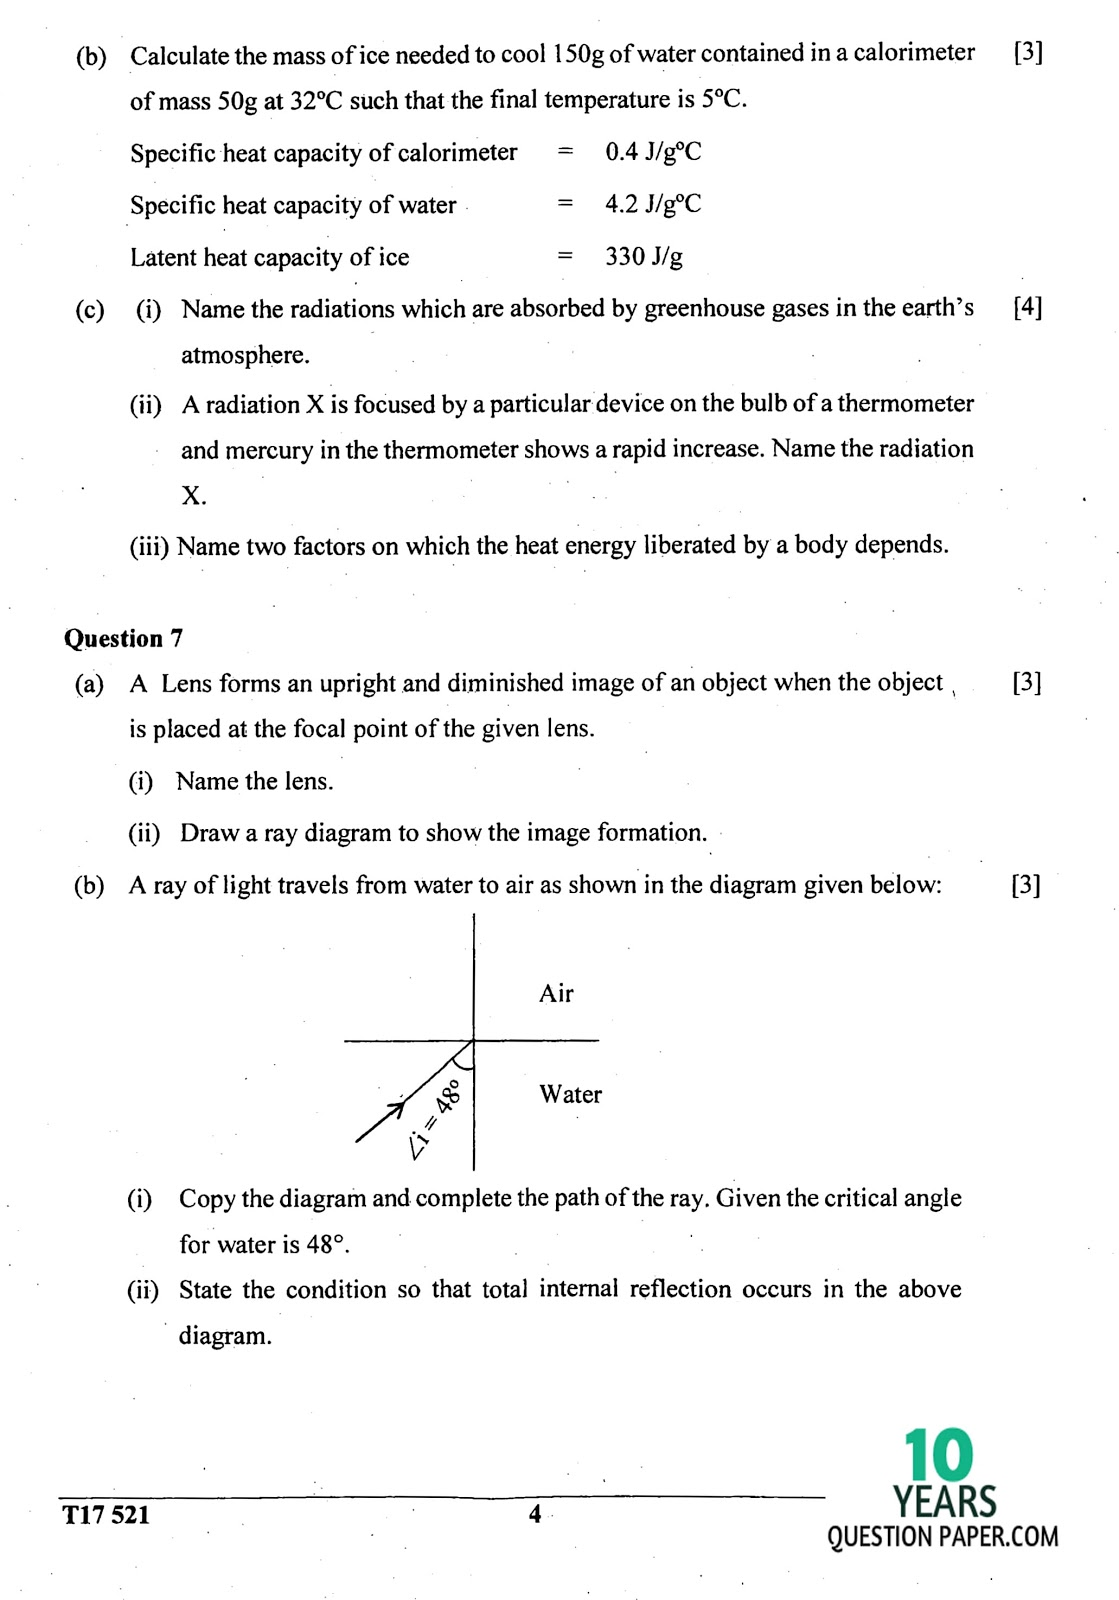 ICSE 2017 Physics Question Paper for Class 10